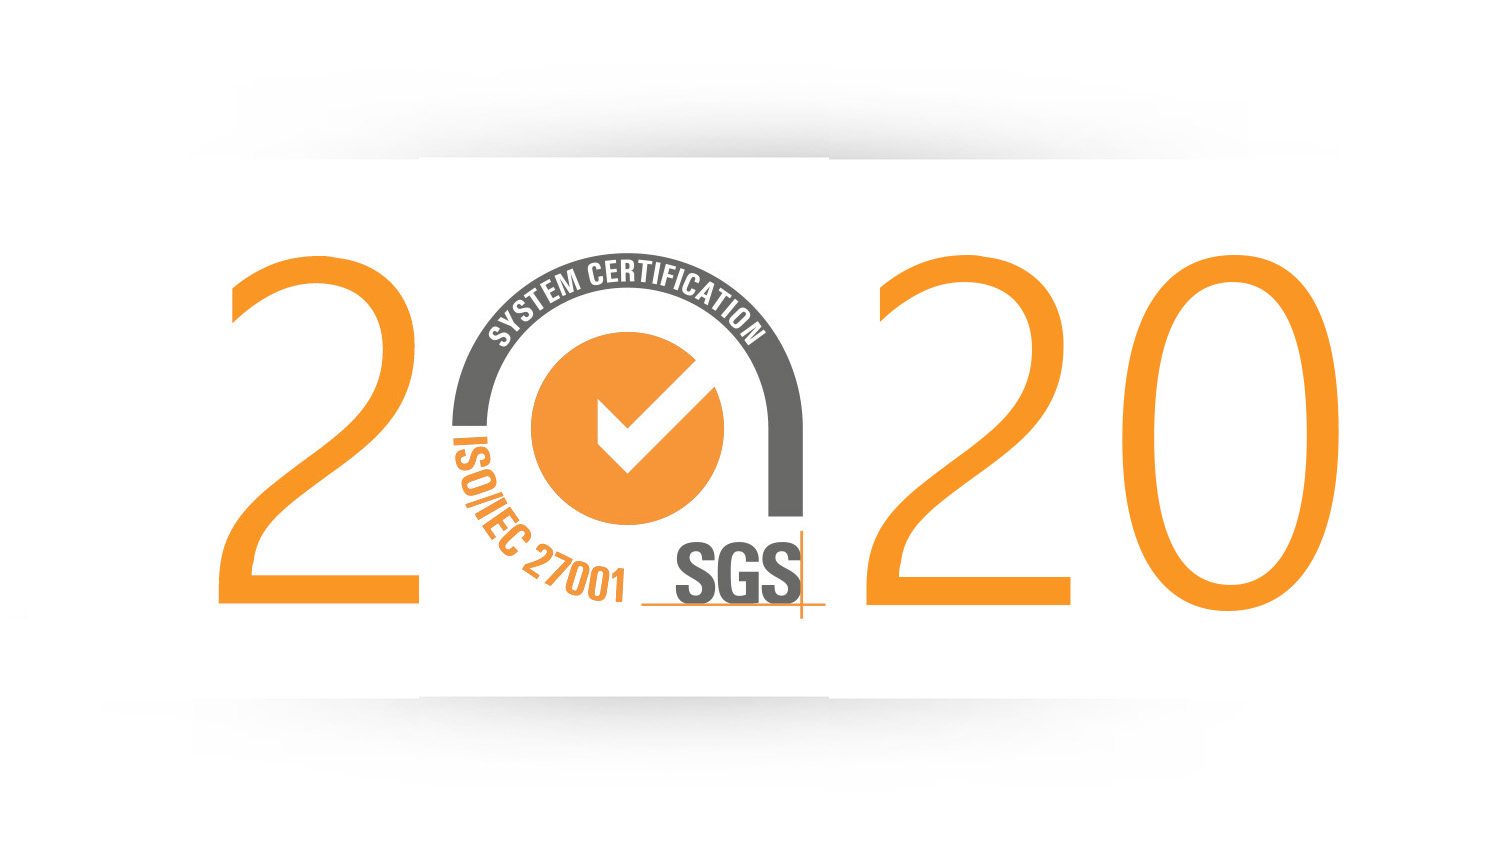 iso27001-2020